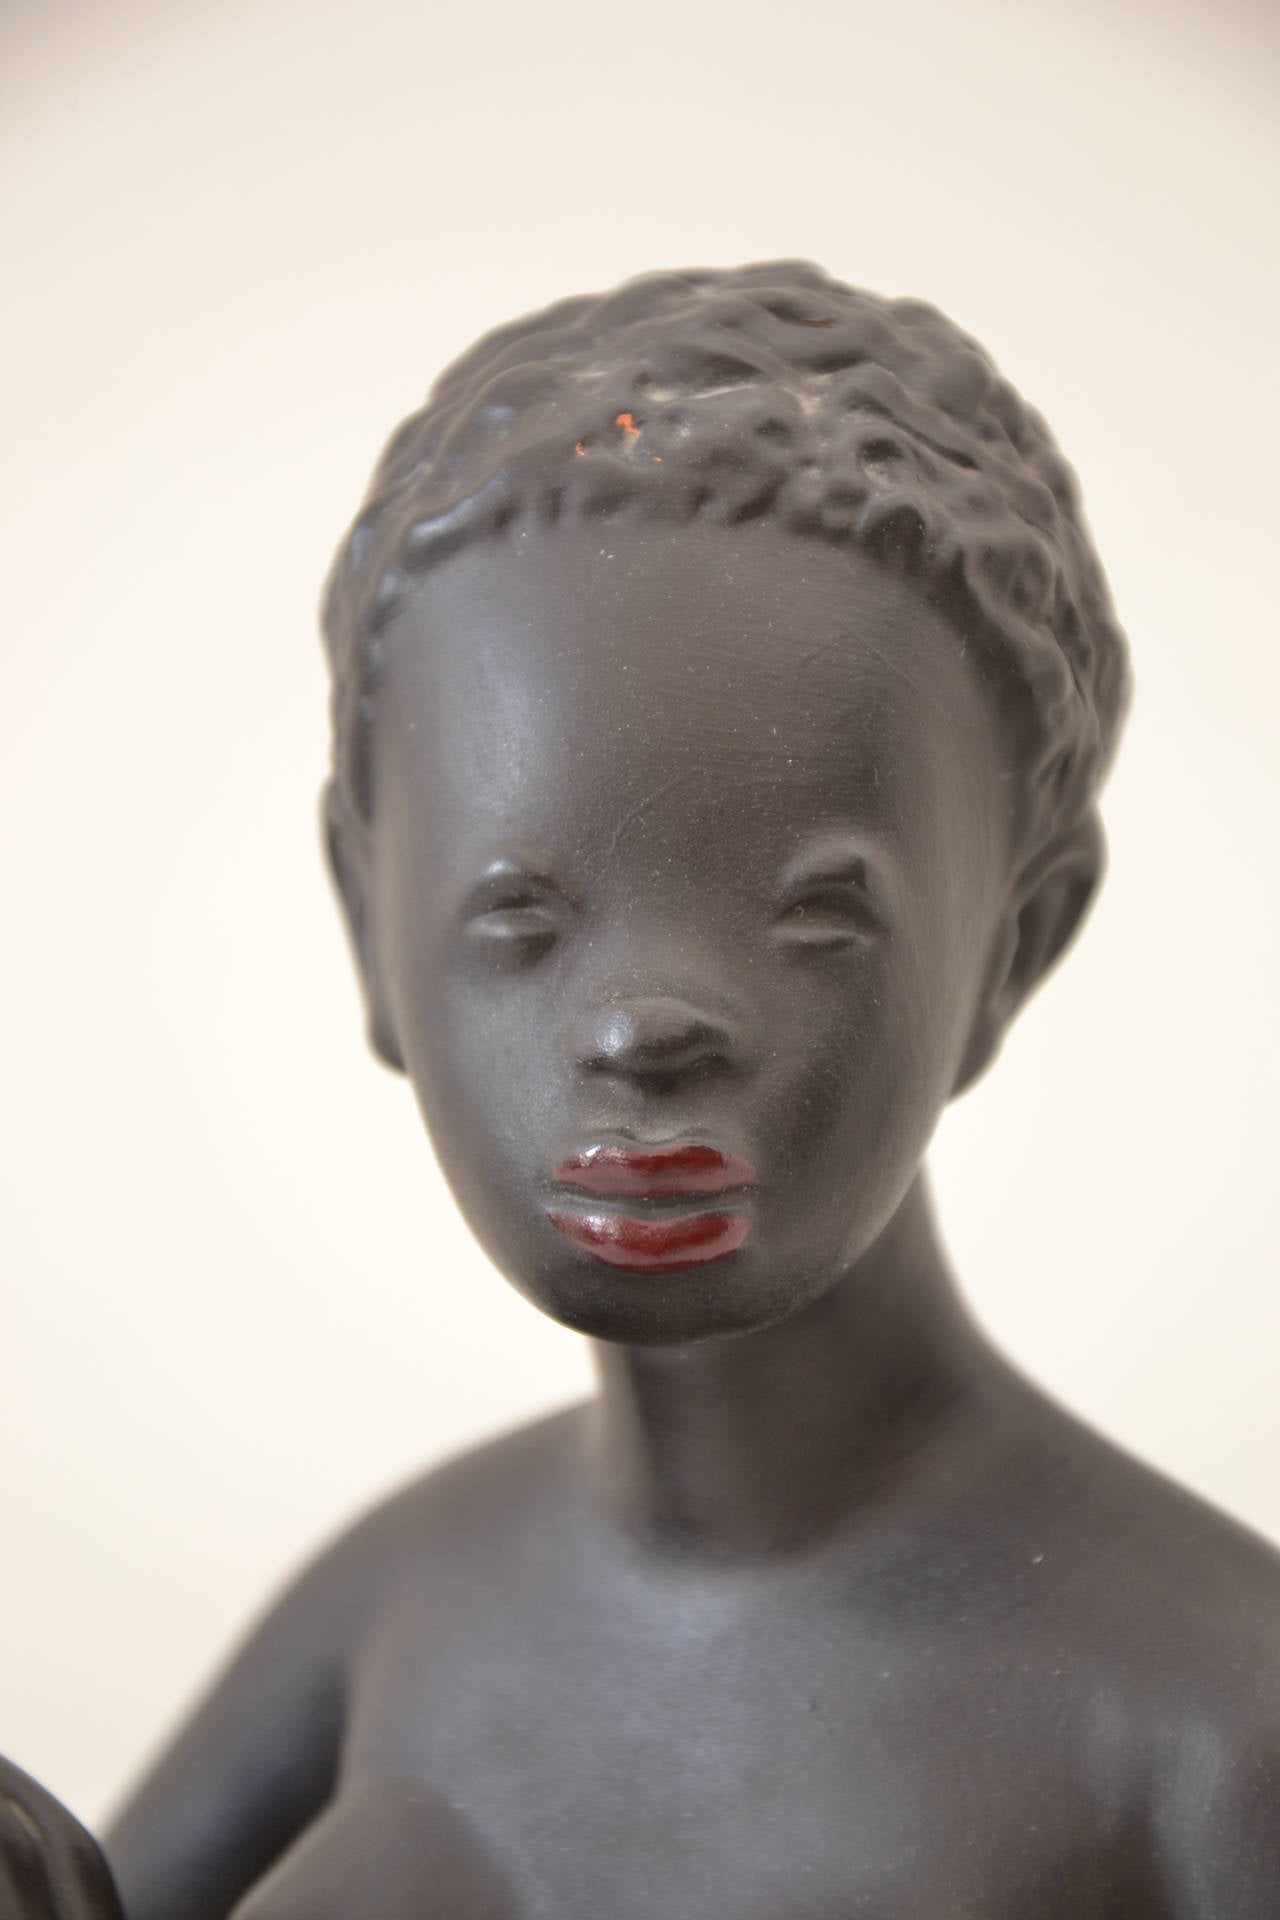 Exotic African Women Sculpture by Leopold Anzengruber, Vienna 1950s 5